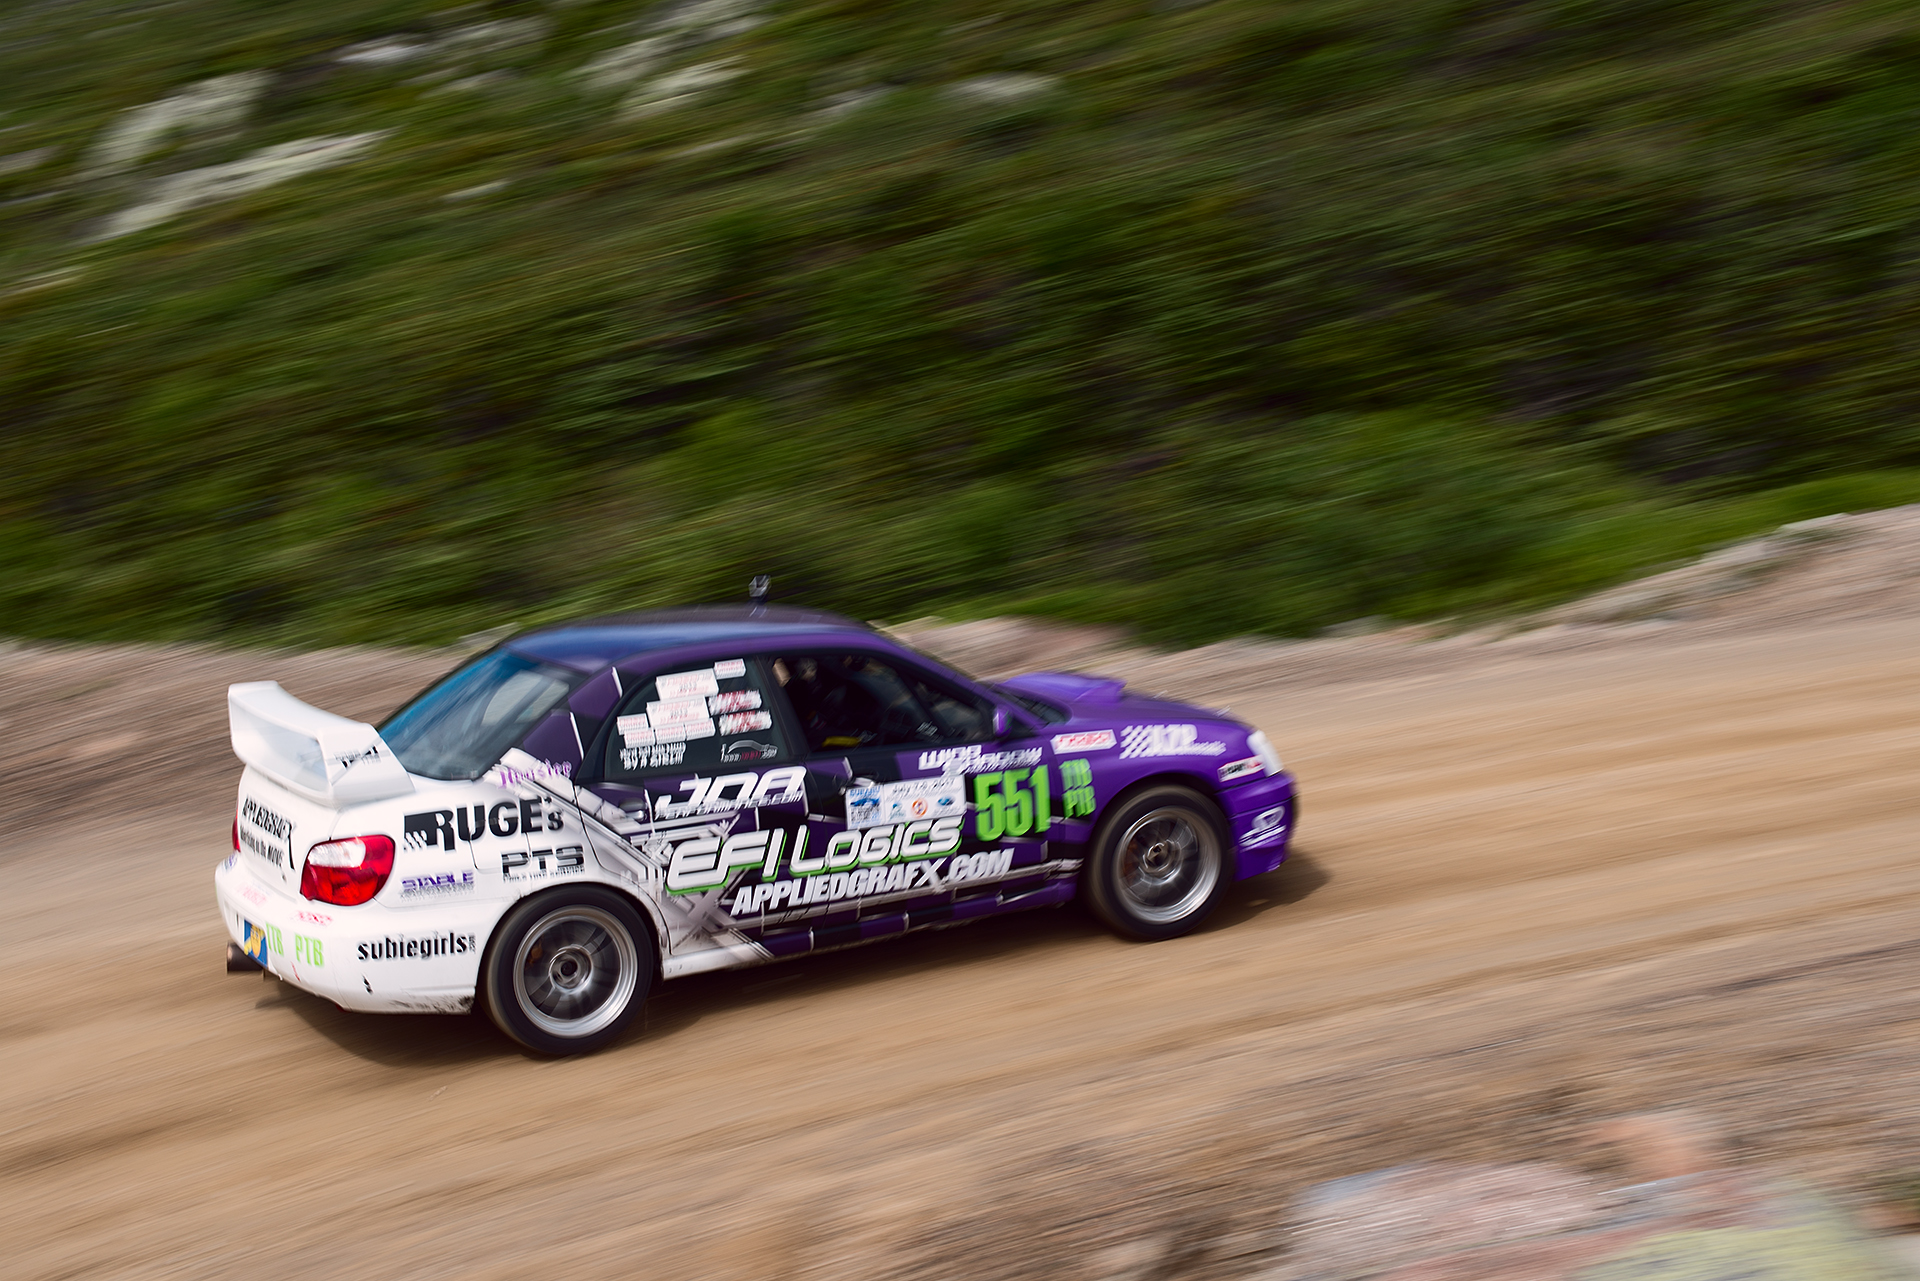 Car 551 at Climb to the Clouds 2017